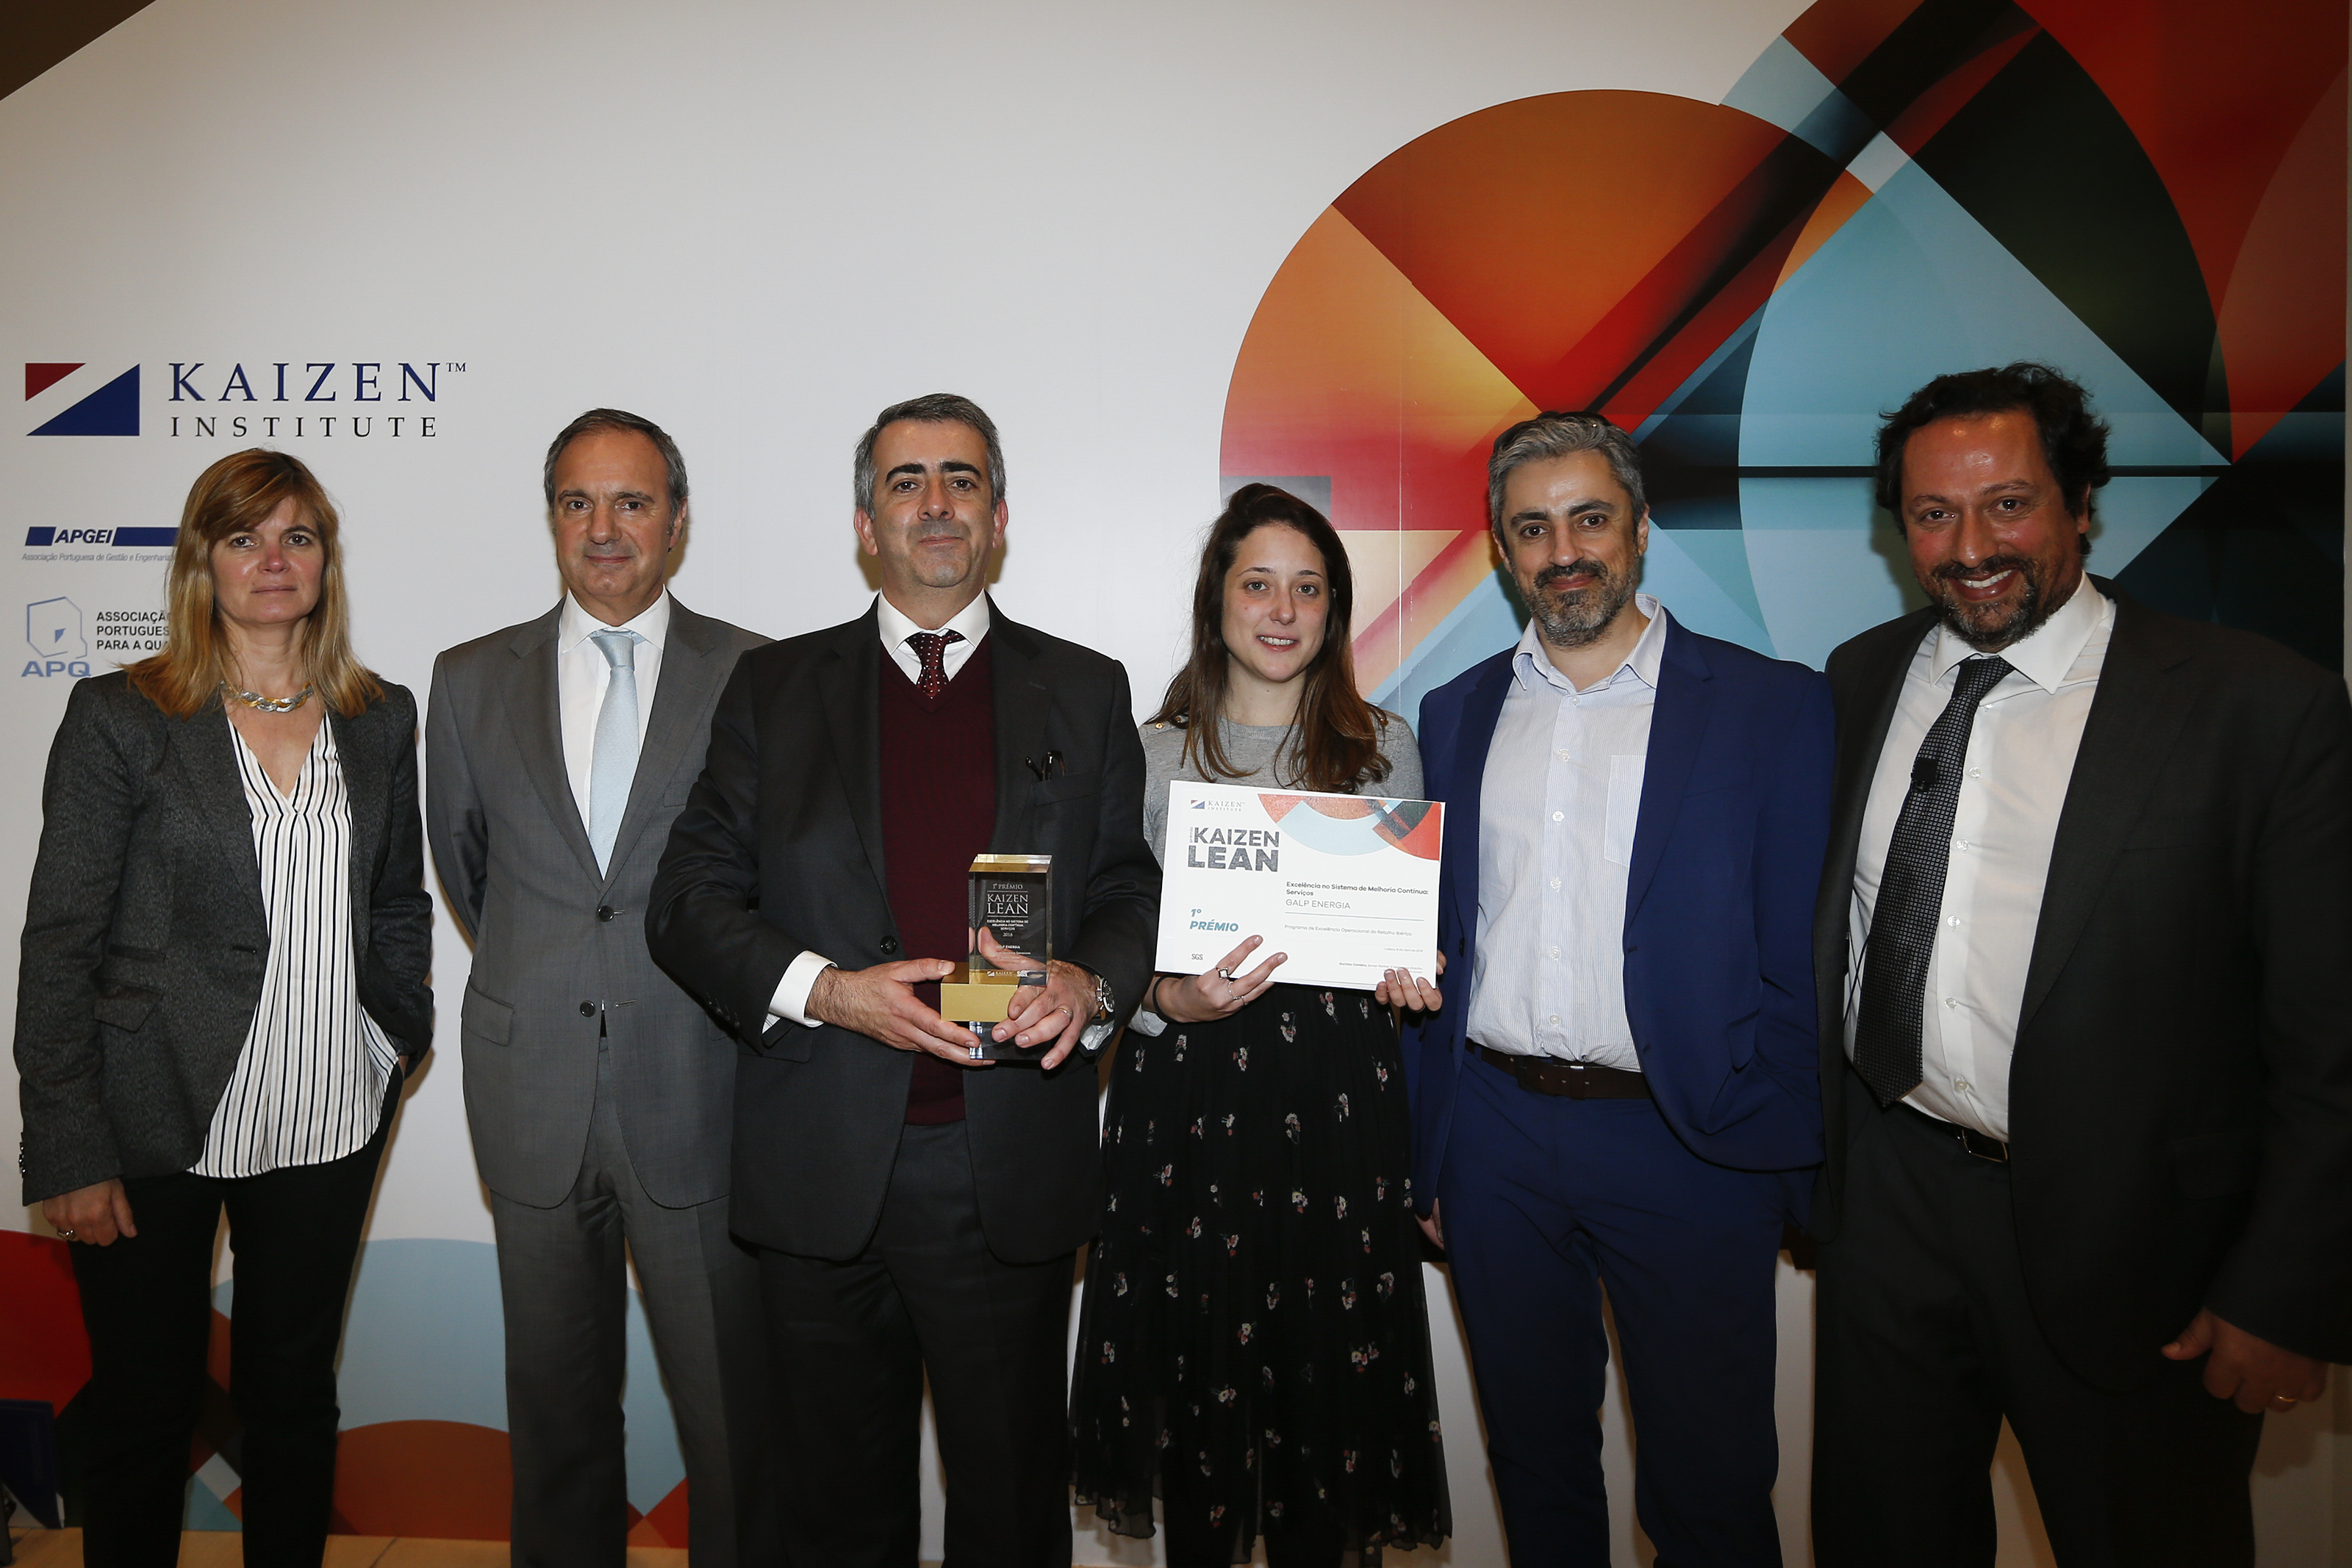 Kaizen Institute Portugal awarded Galp with the Premio KAIZEN™ Lean Portugal 2018, Category: Excellence in Continuous Improvement System